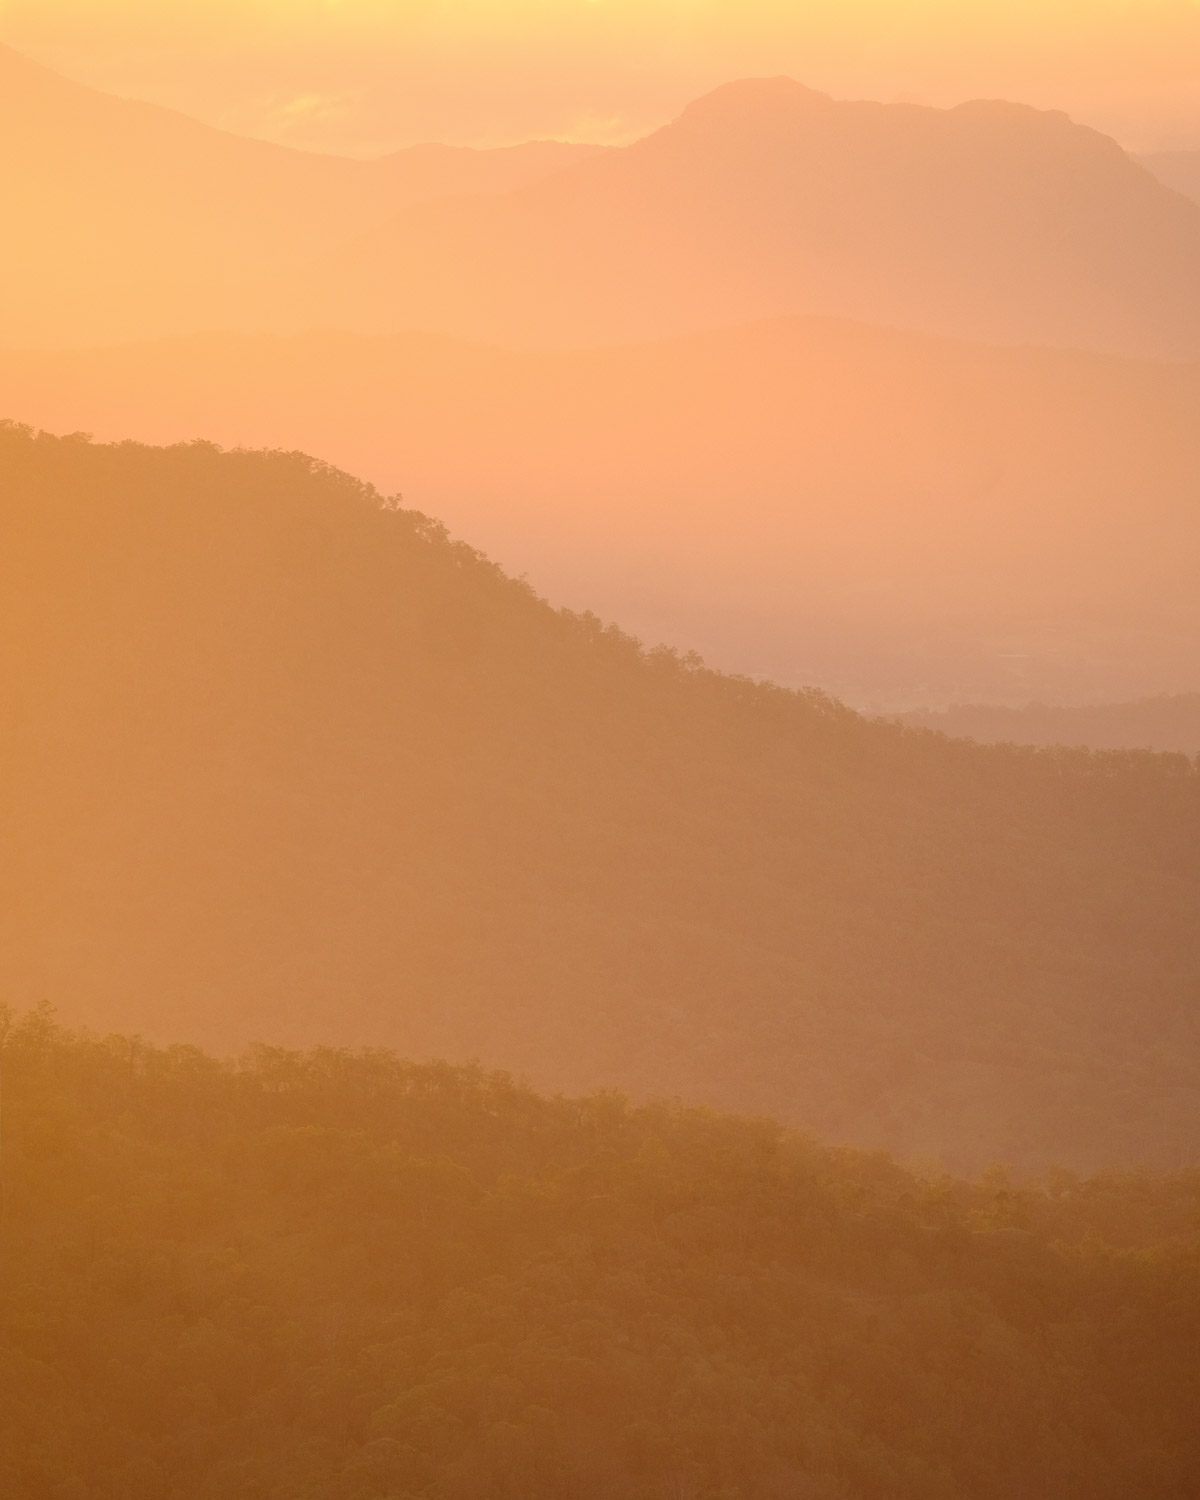 Image: I love how telephoto lenses make faraway objects look close together. Mountain ranges on the...